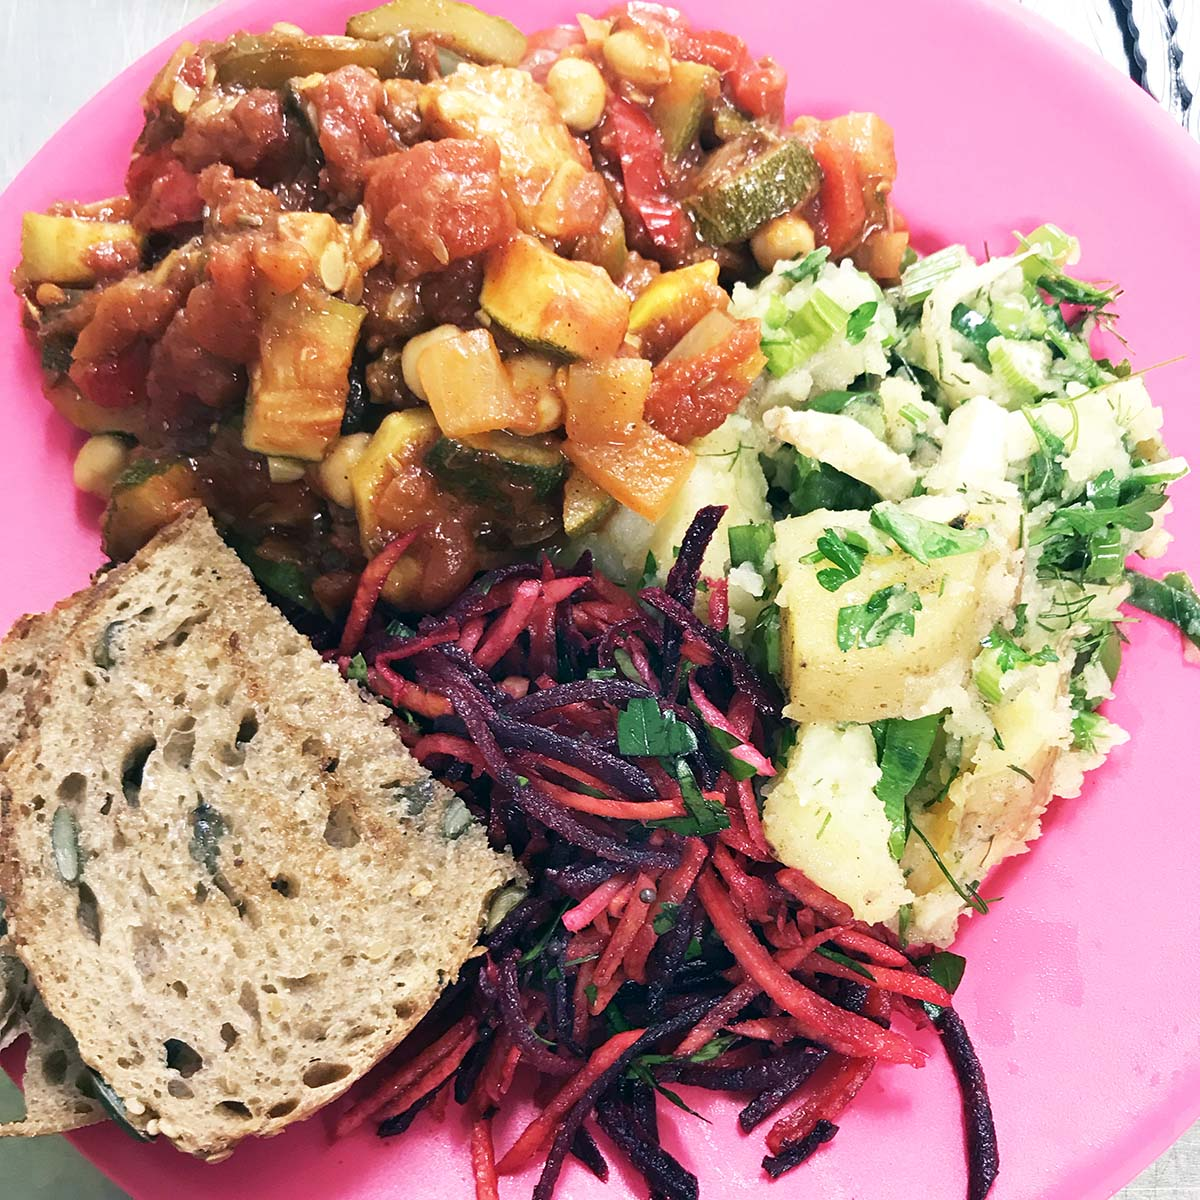 courgette ratatouille with salads and bread on pink plate